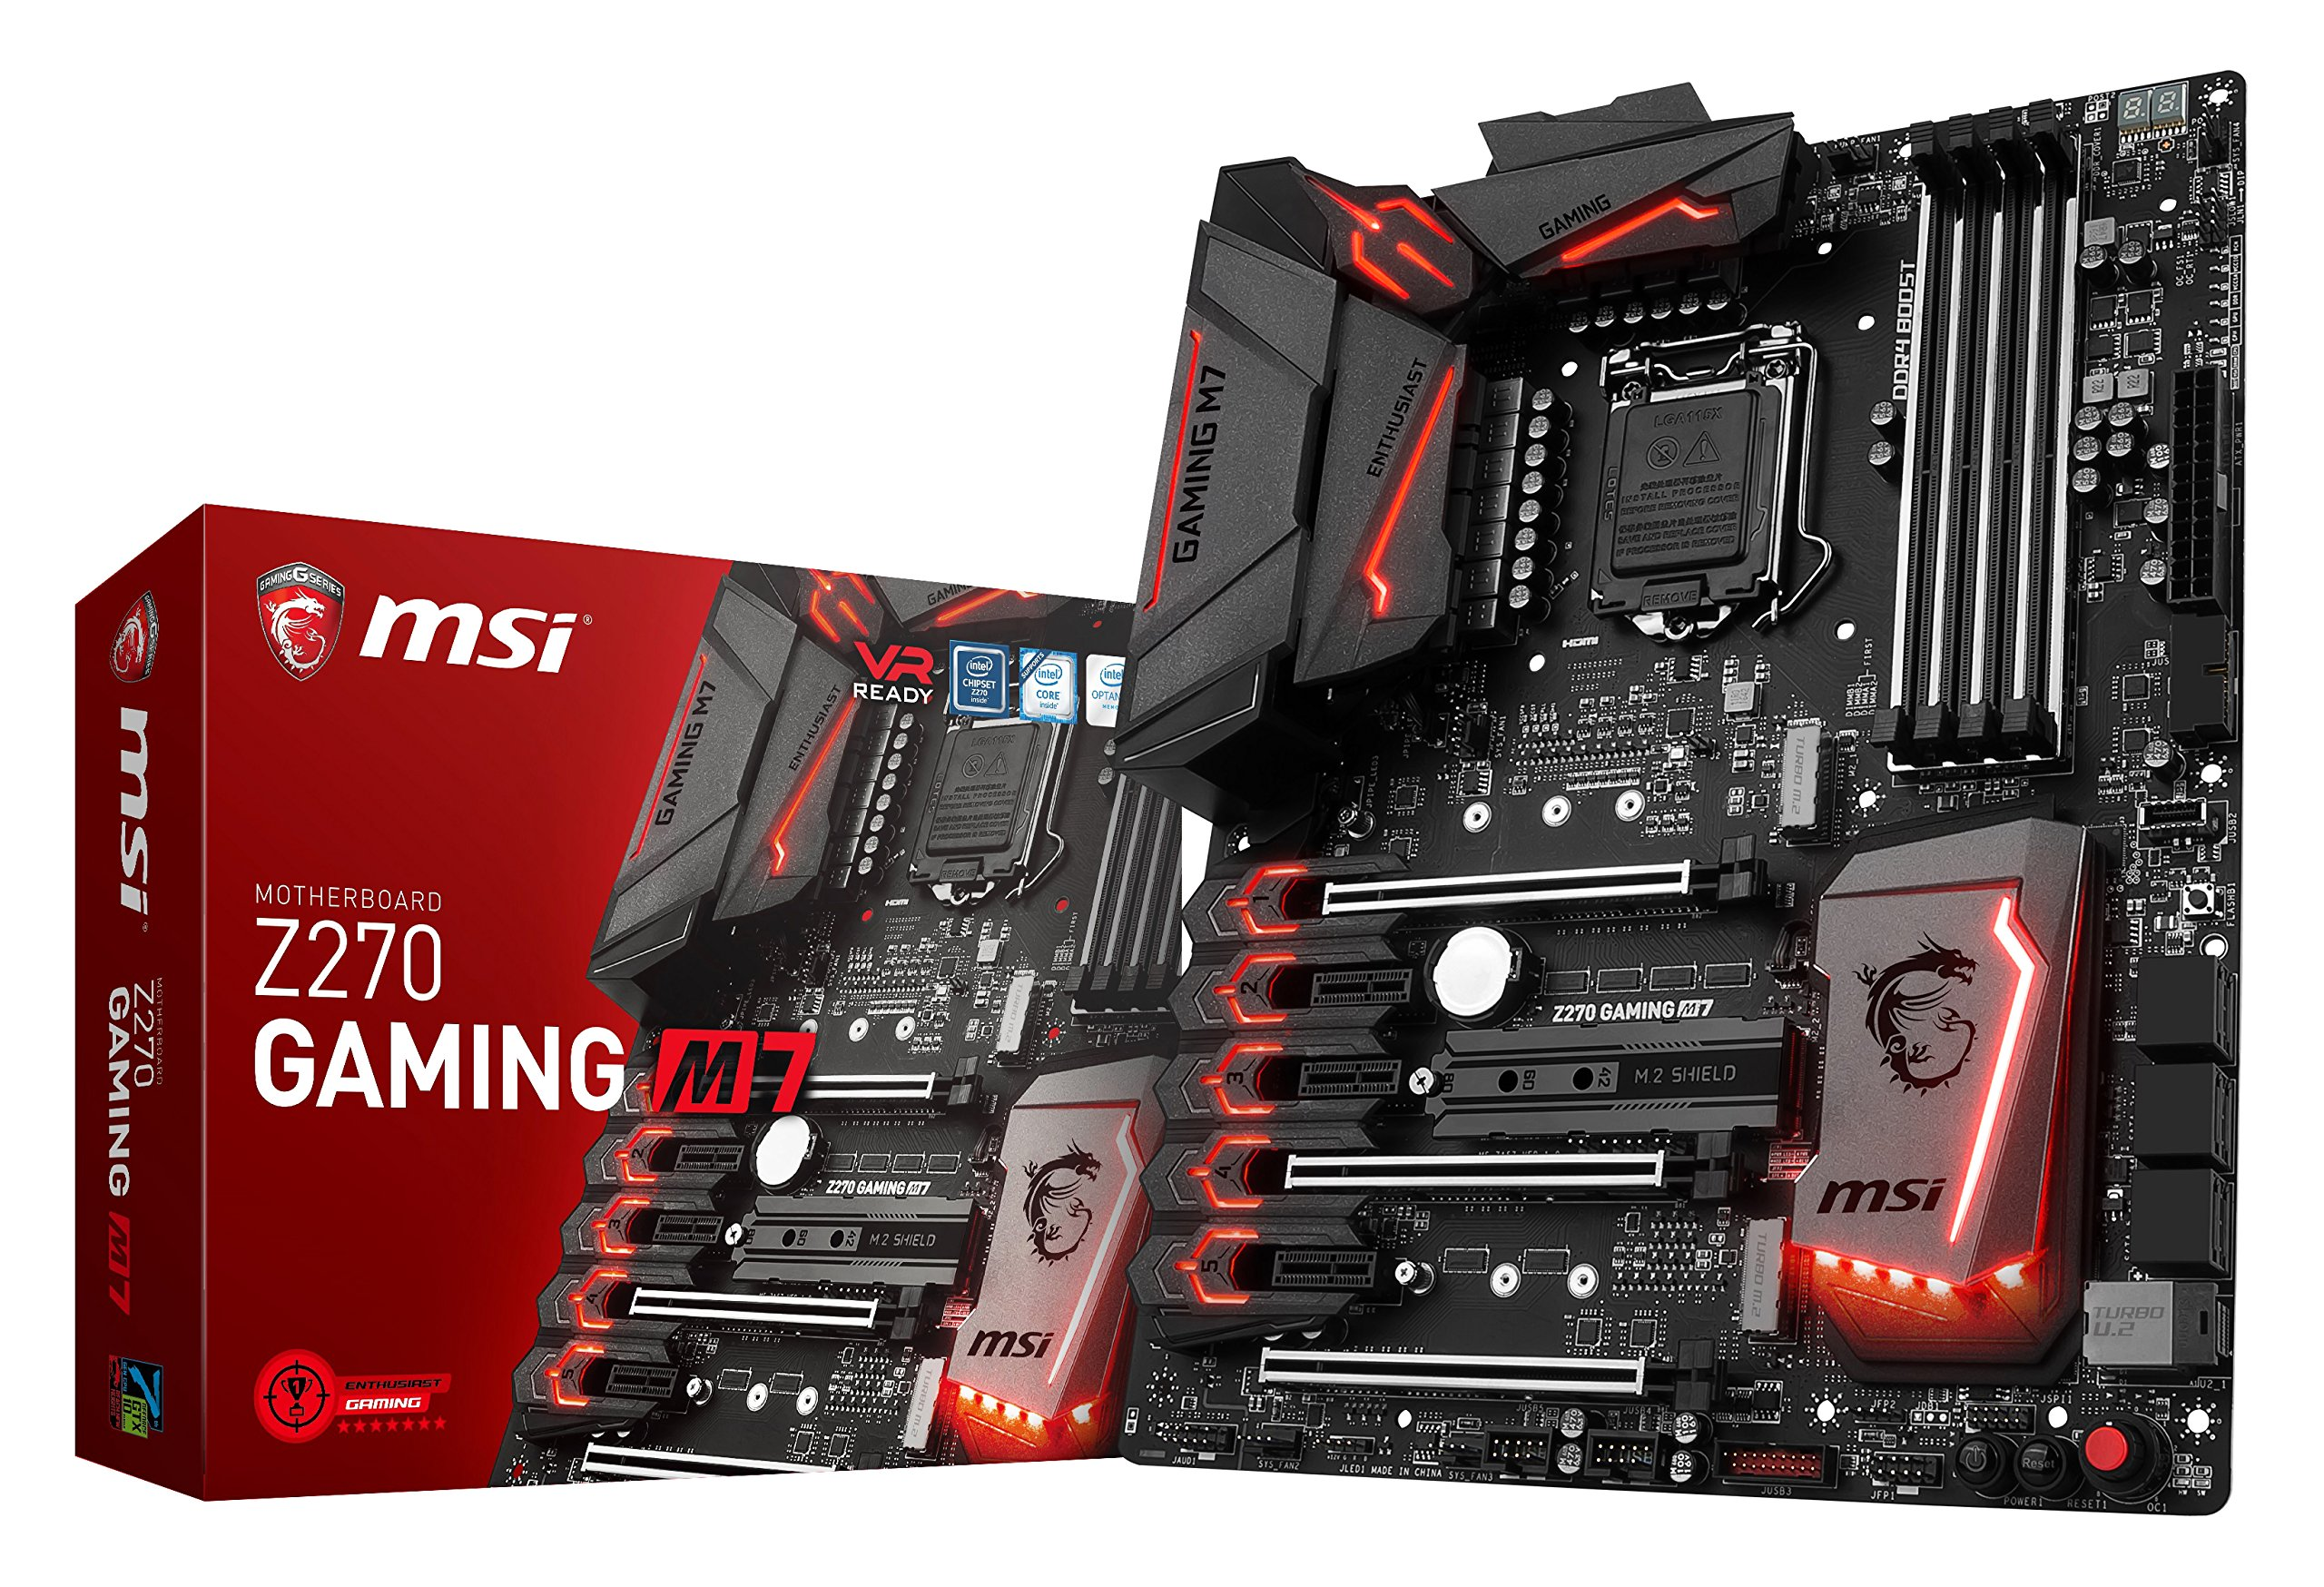 MSI Enthusiastic Gaming Intel Z270 DDR4 VR Ready HDMI USB 3 ATX Motherboard (Z270 GAMING M7) by MSI